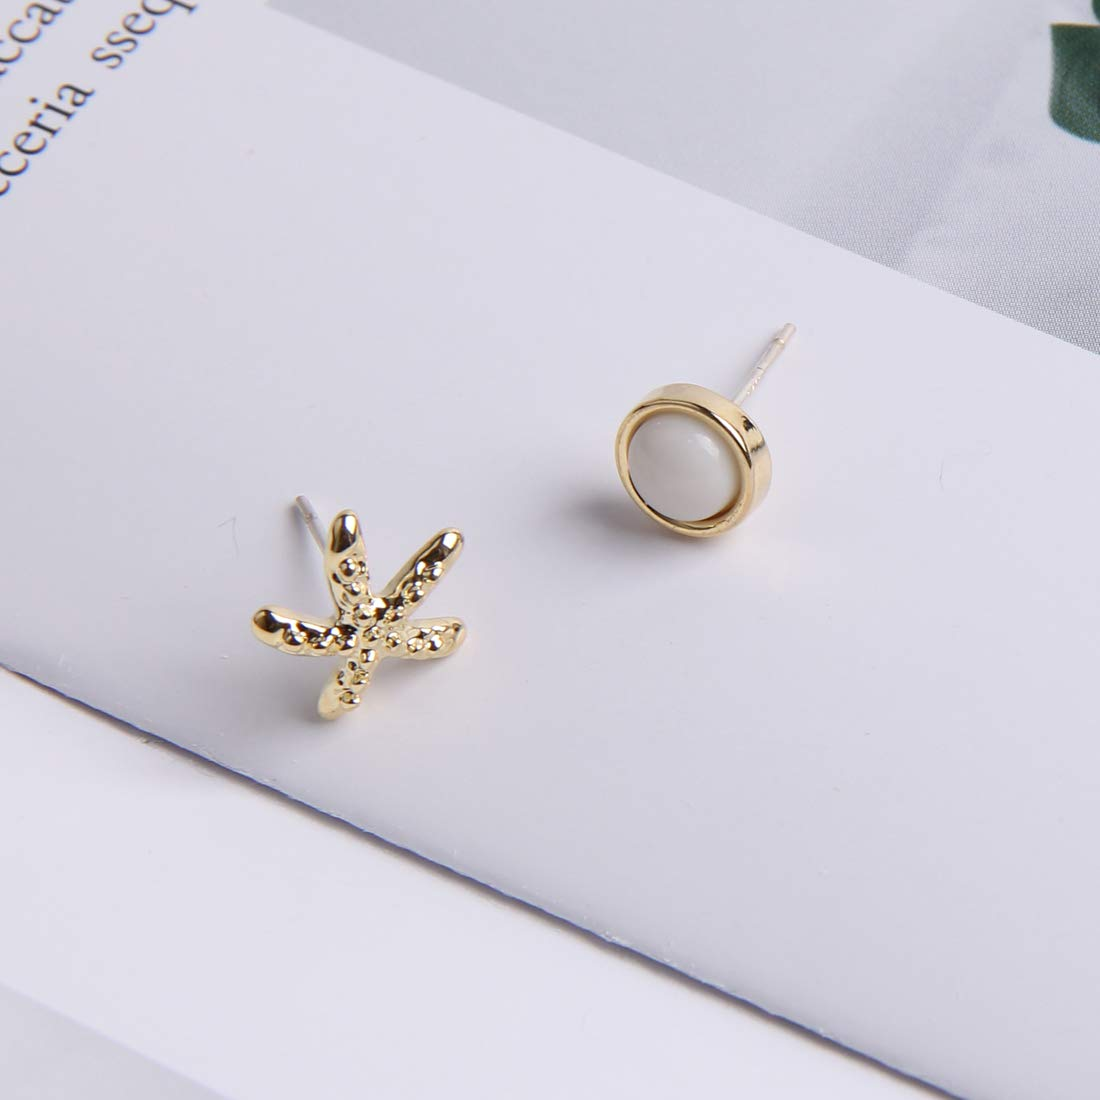 YESLADY Asymmetry Starfish And Round Stone Stud Earrings For Women Girls